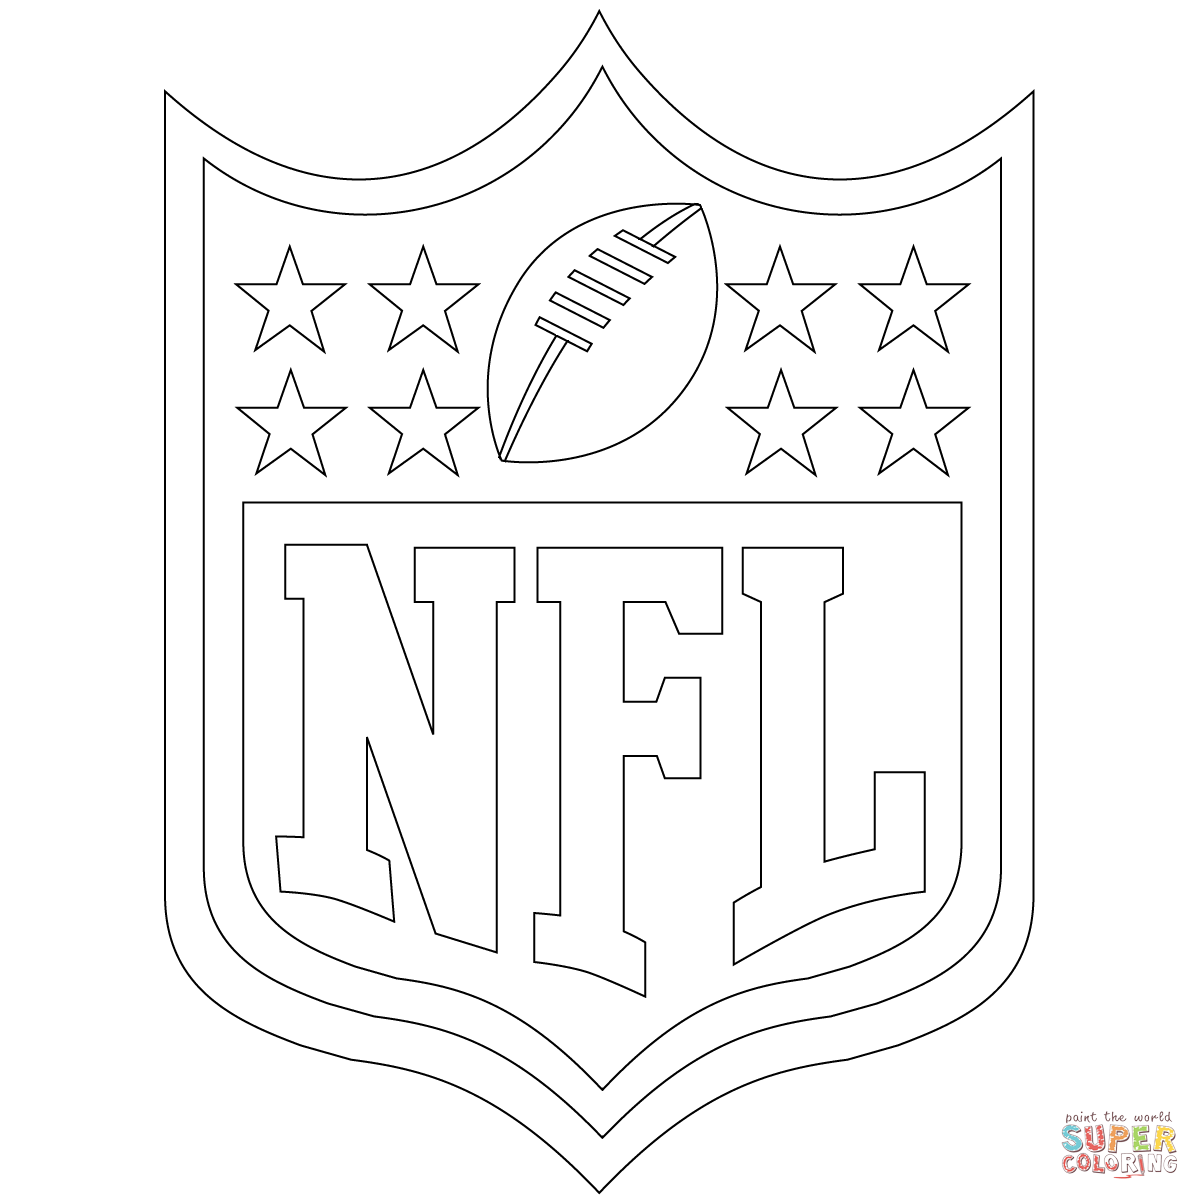 Green Bay Packers Coloring Pages For Adults To Color And ...